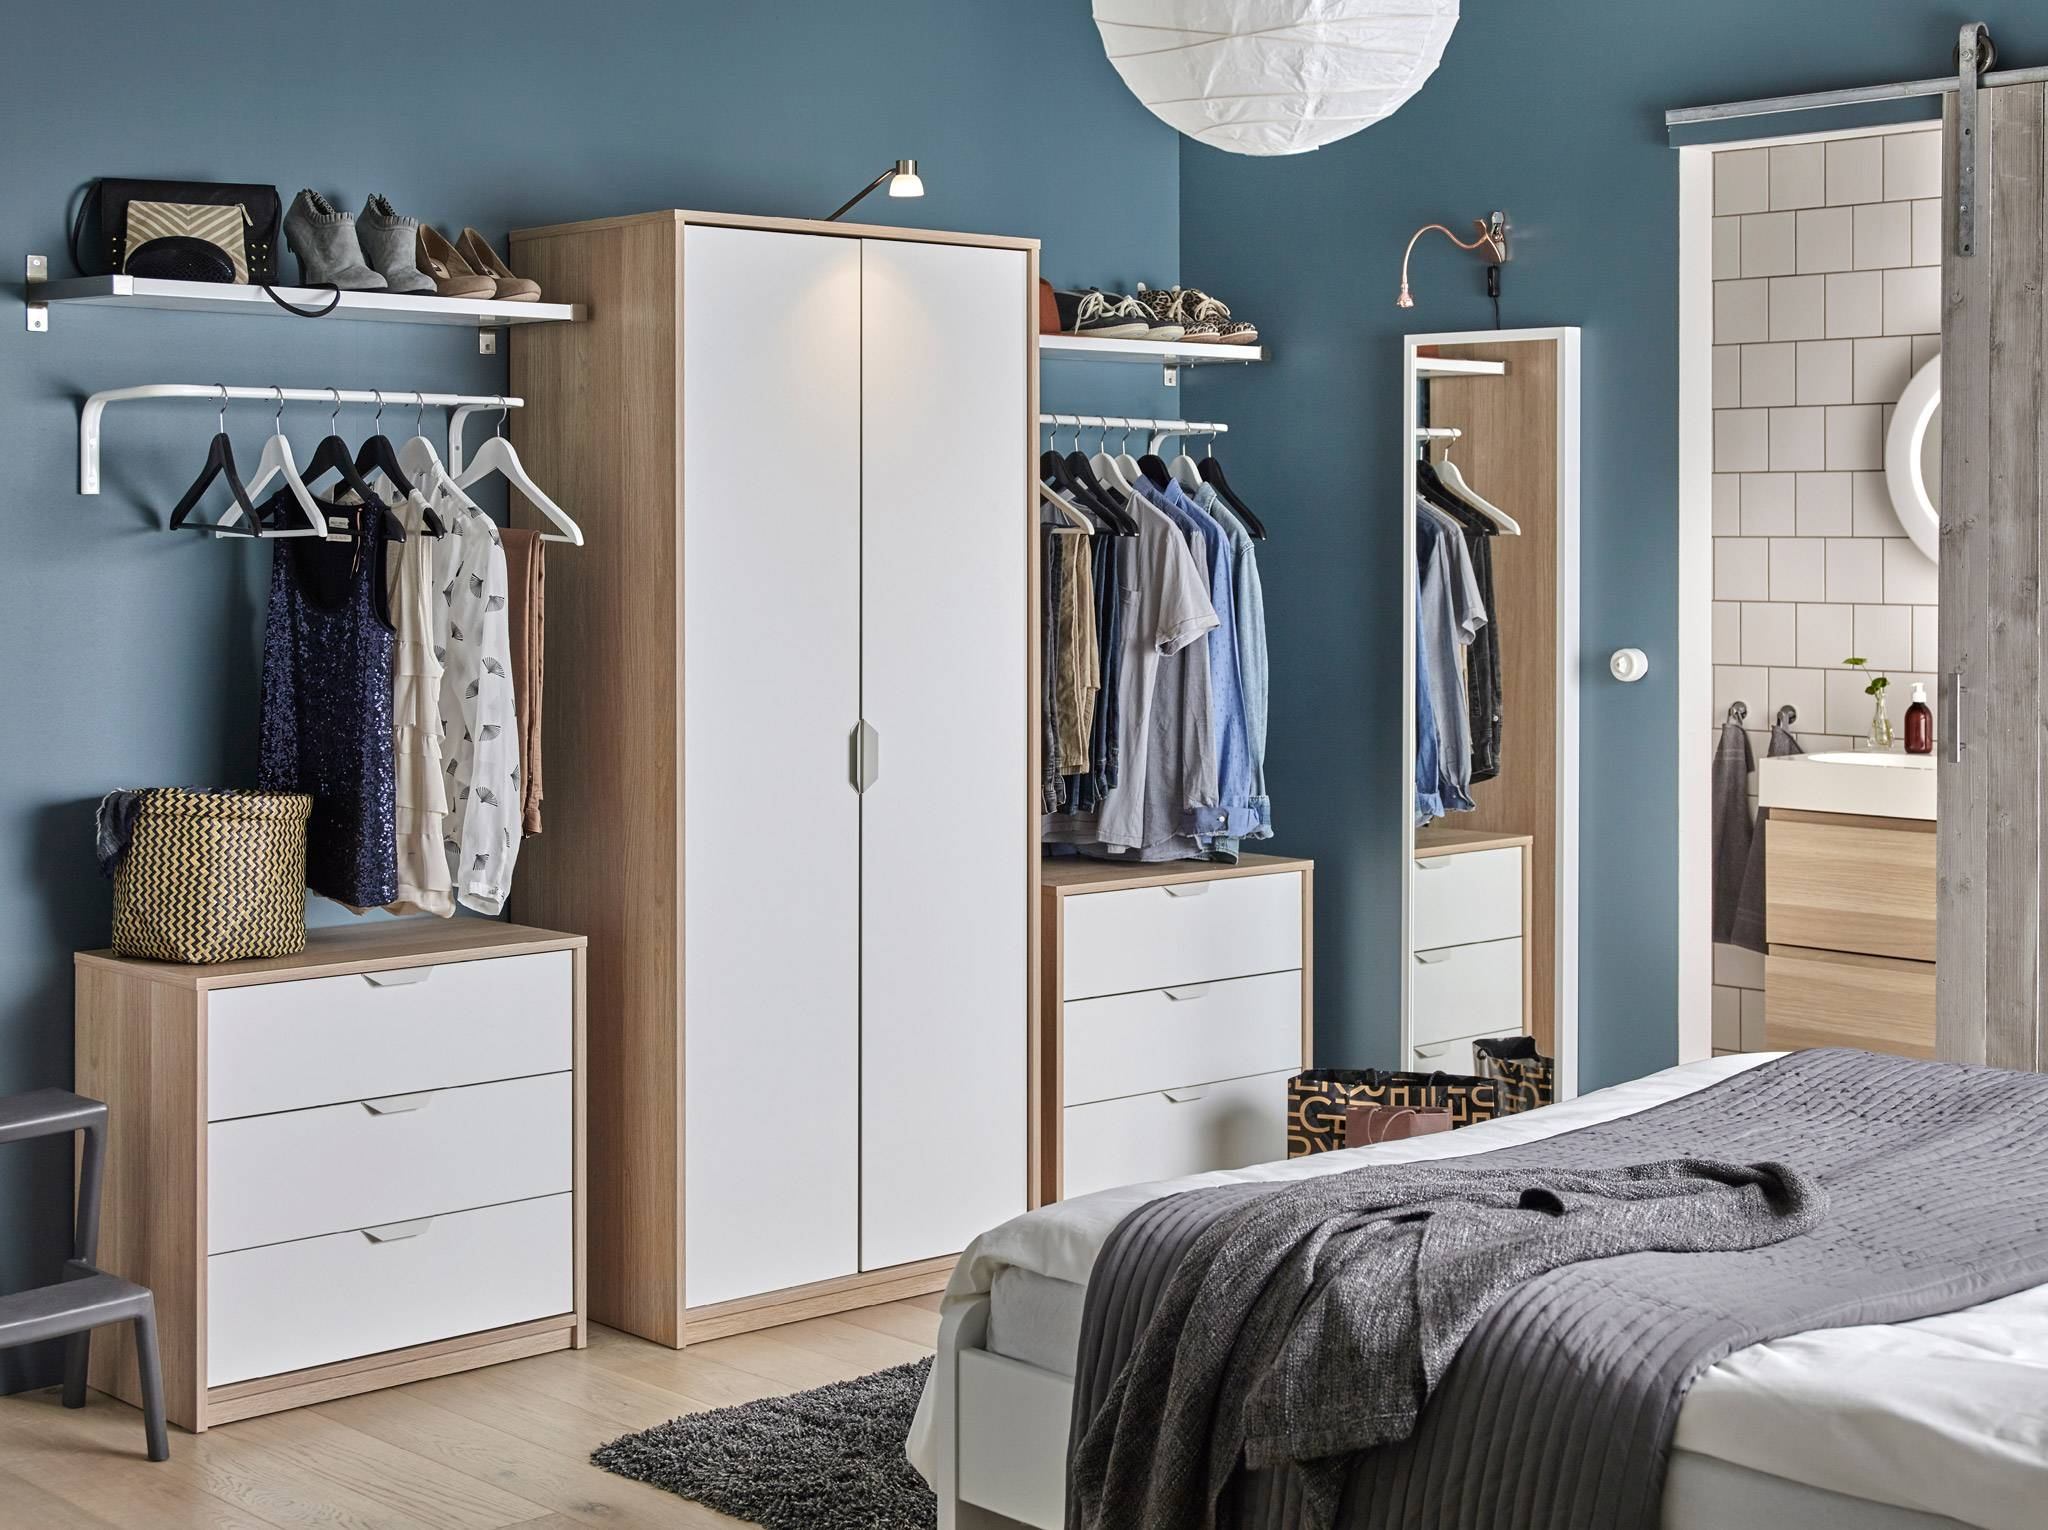 Bedroom Furniture & Ideas | Ikea for Wardrobes and Drawers Combo (Image 3 of 15)